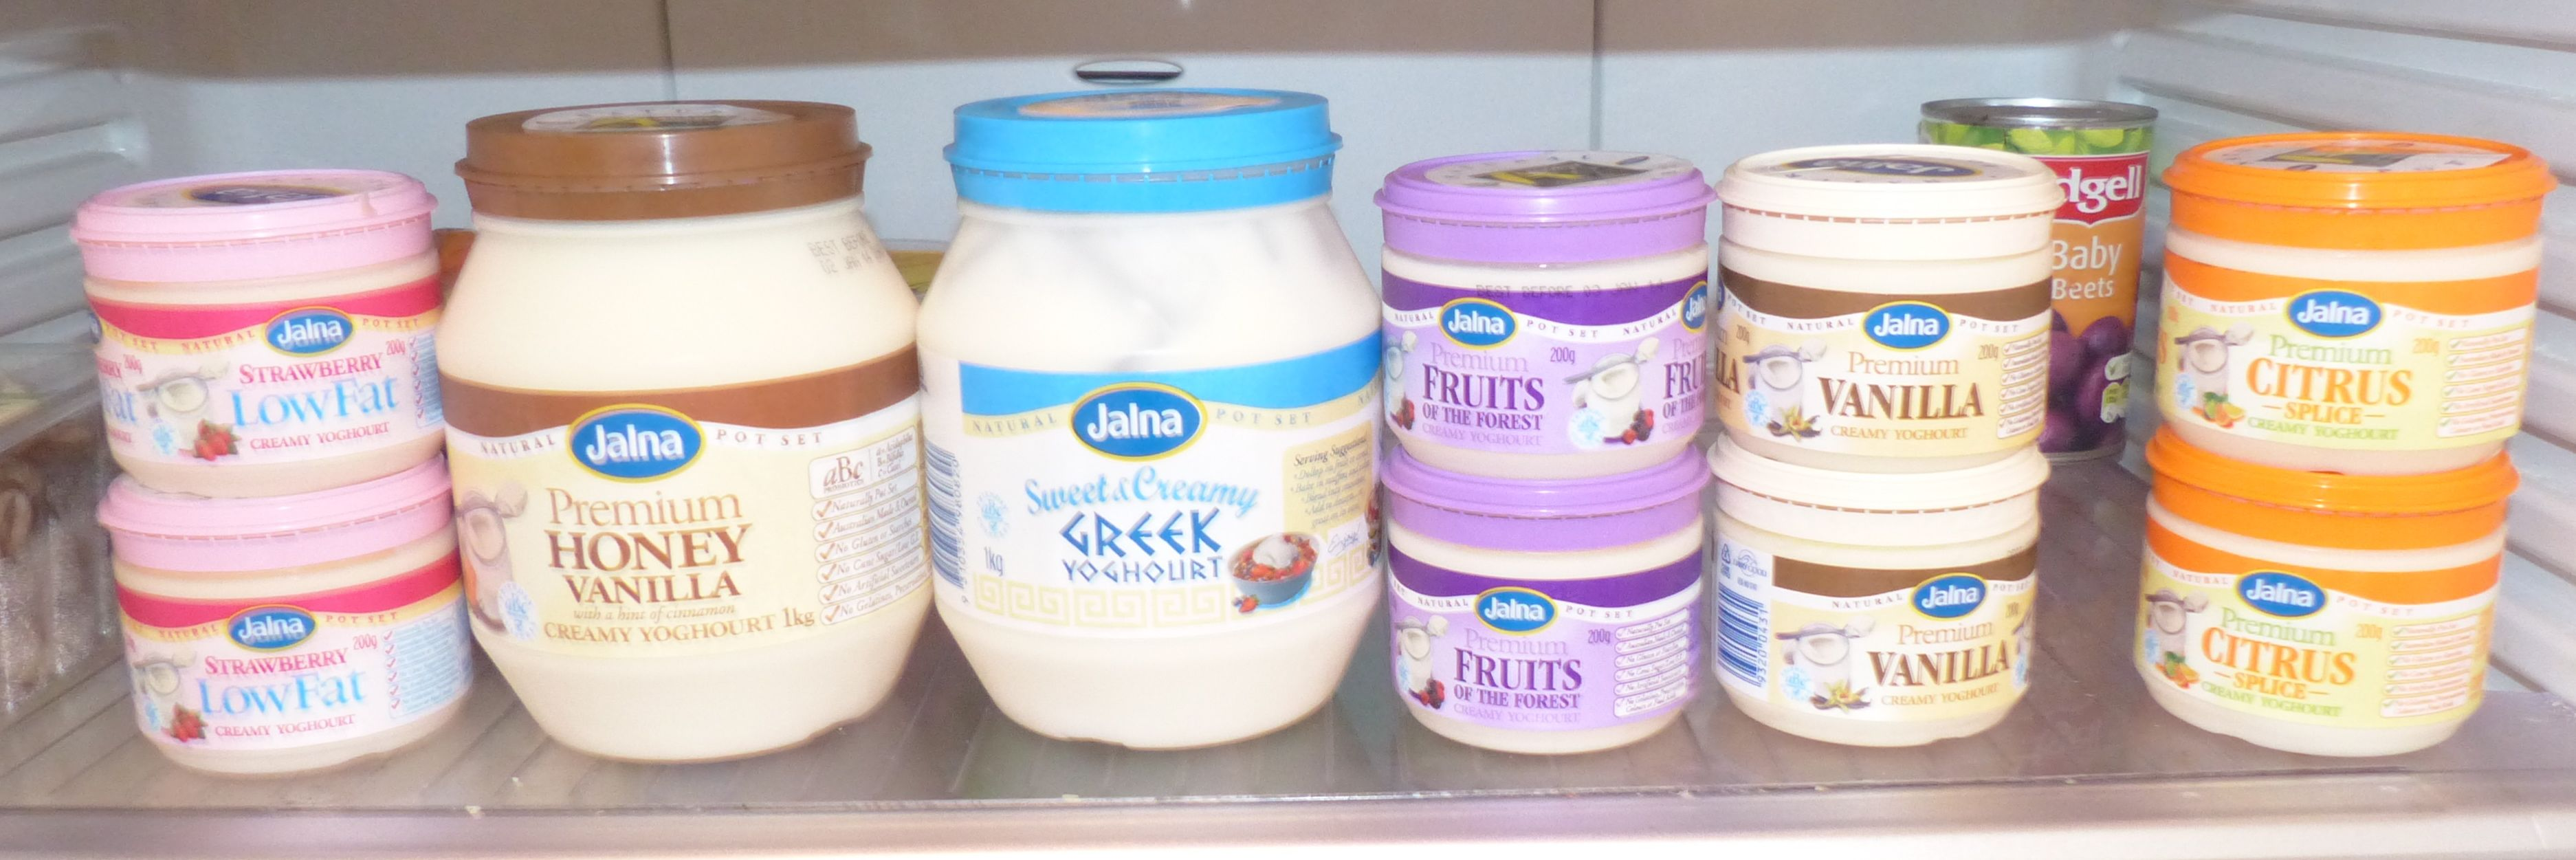 A fridge full of Jalna